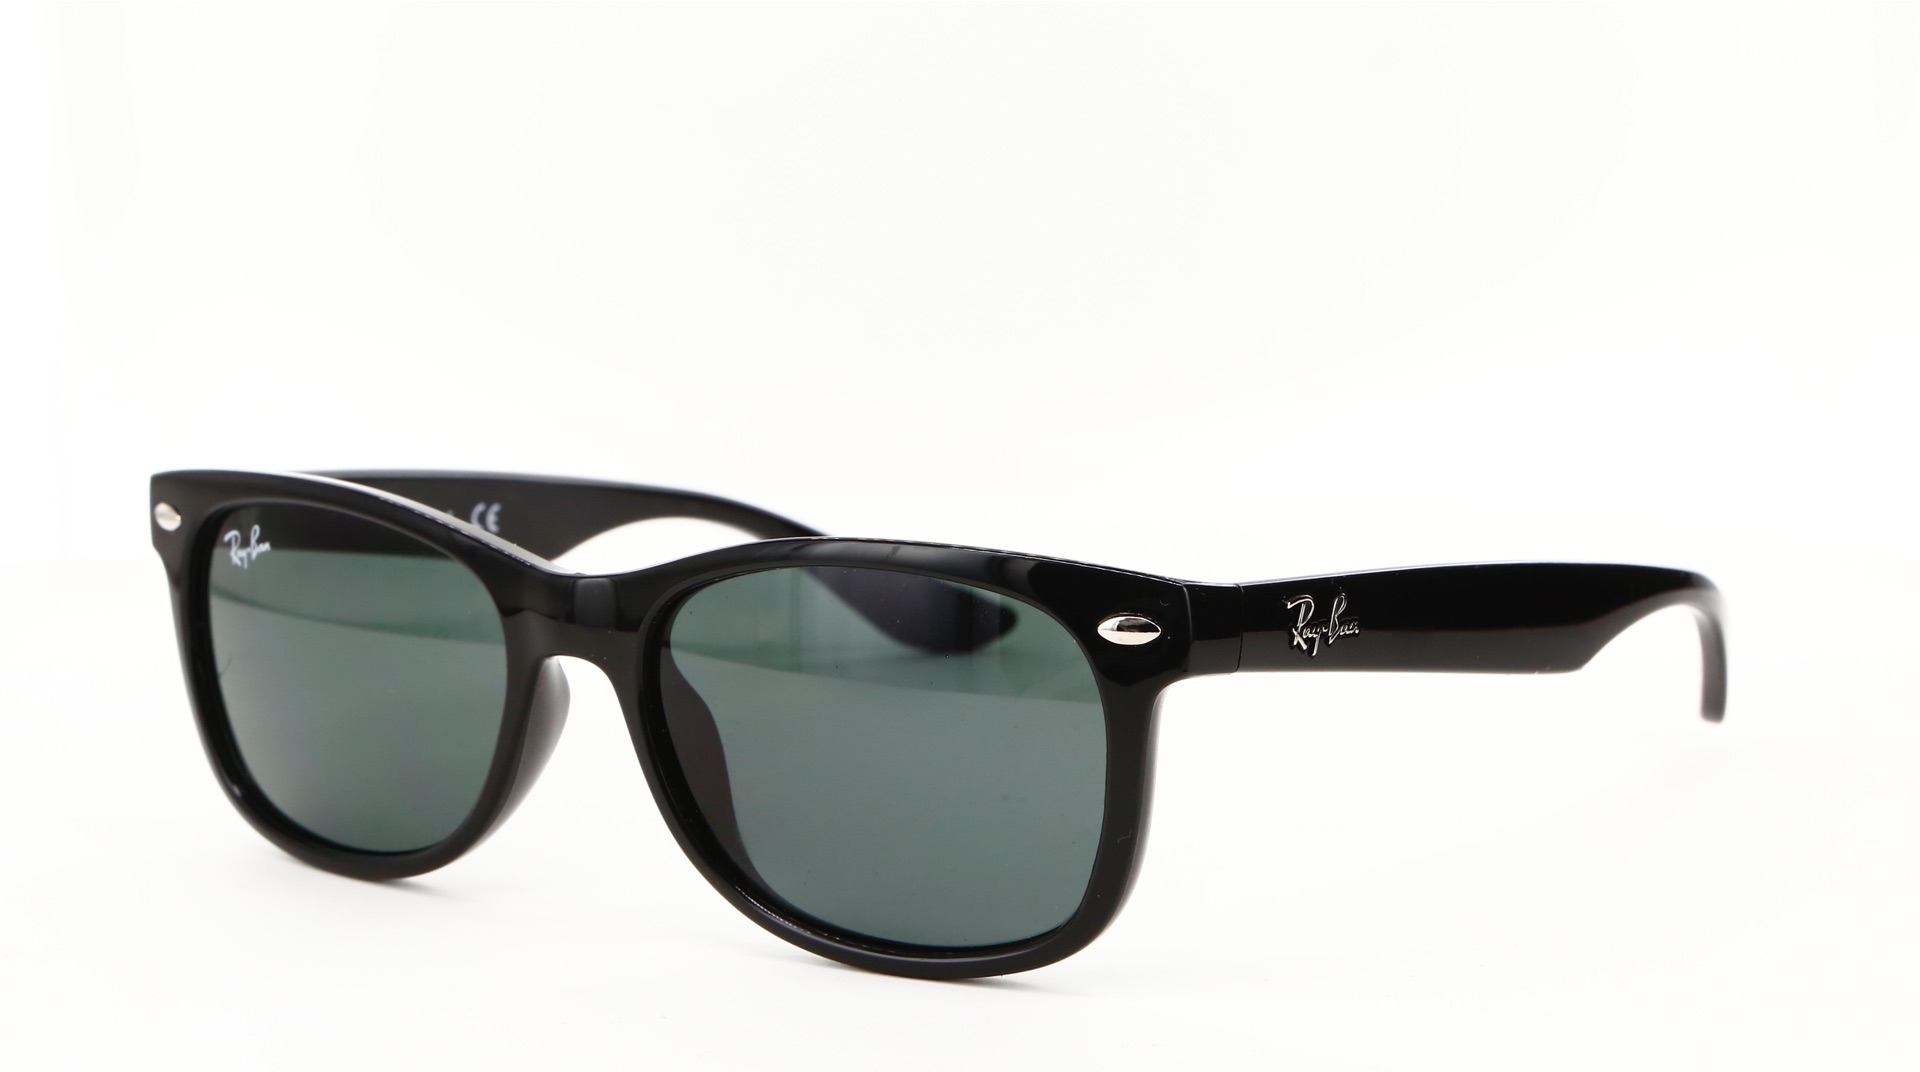 Ray-Ban - ref: 62854